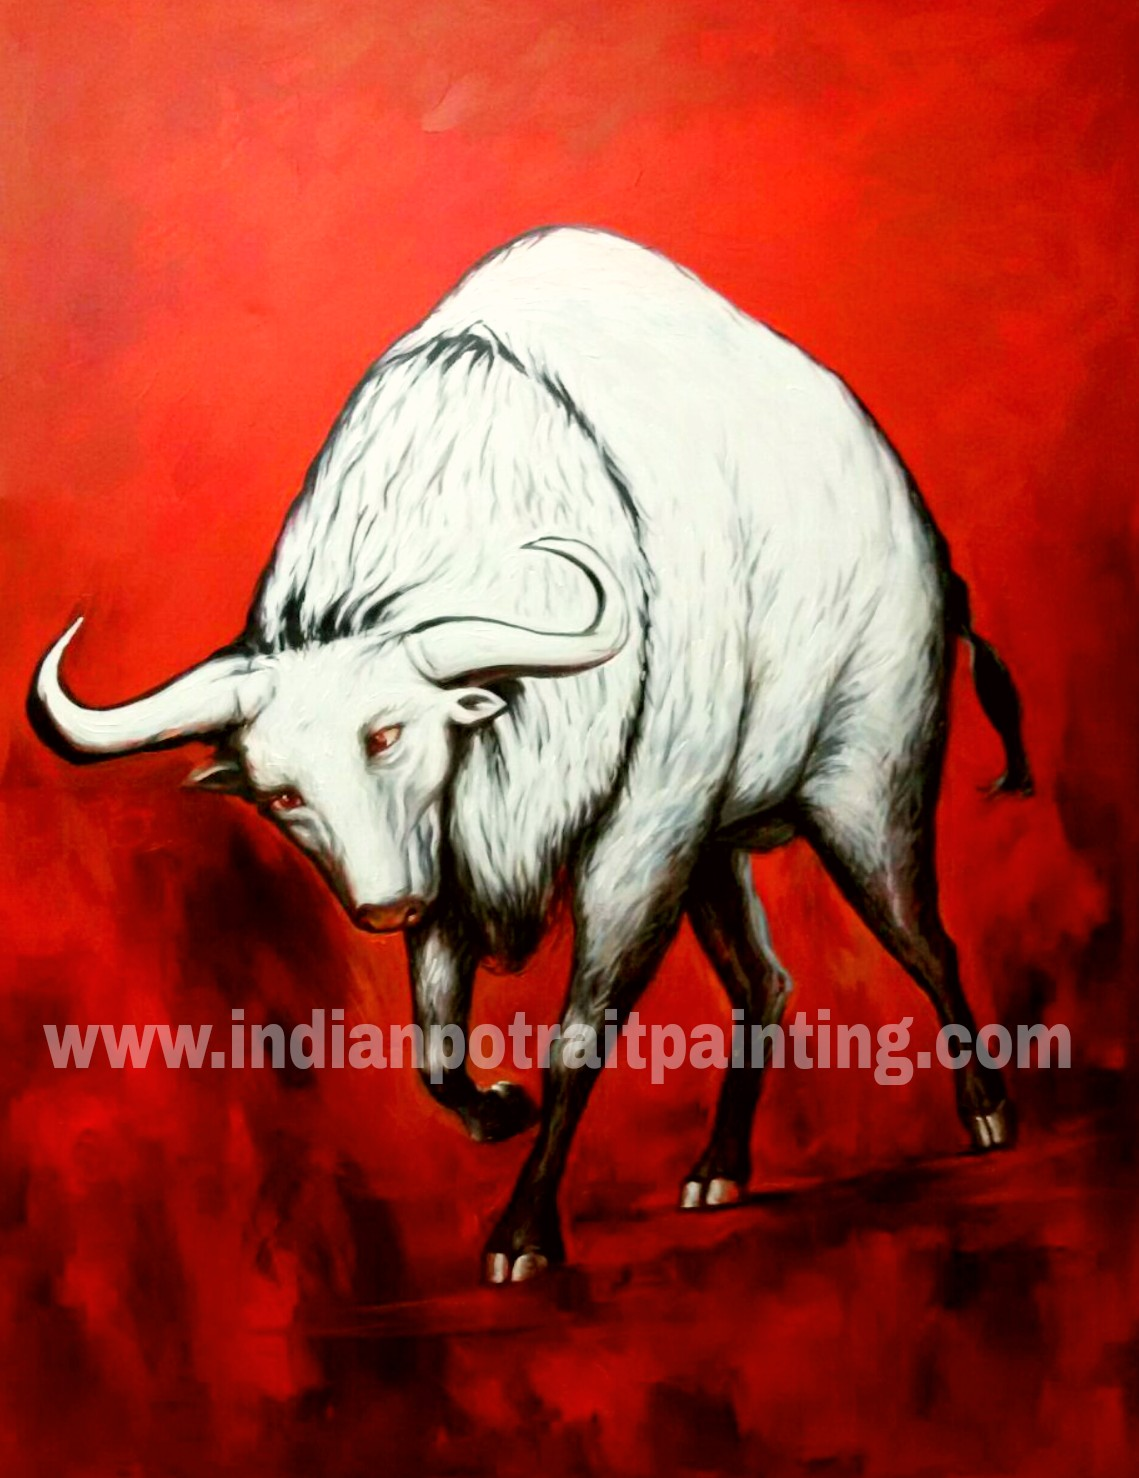 Hand painted art on oil canvas